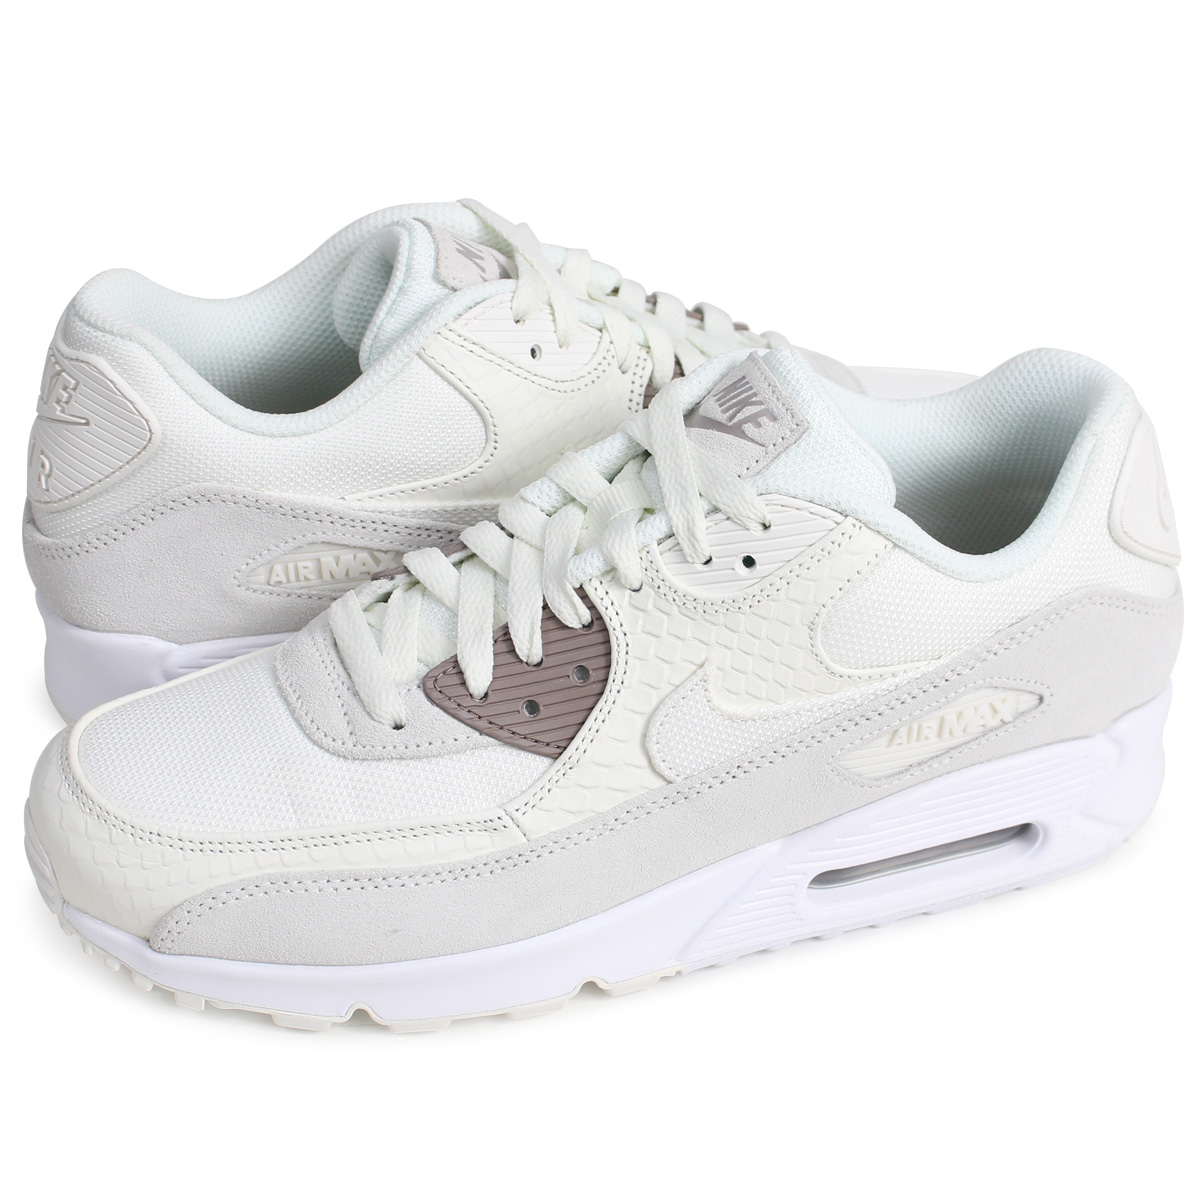 NIKE AIR MAX 90 PREMIUM Kie Ney AMAX 90 sneakers men 700,155-102 off-white  [4/17 Shinnyu load]